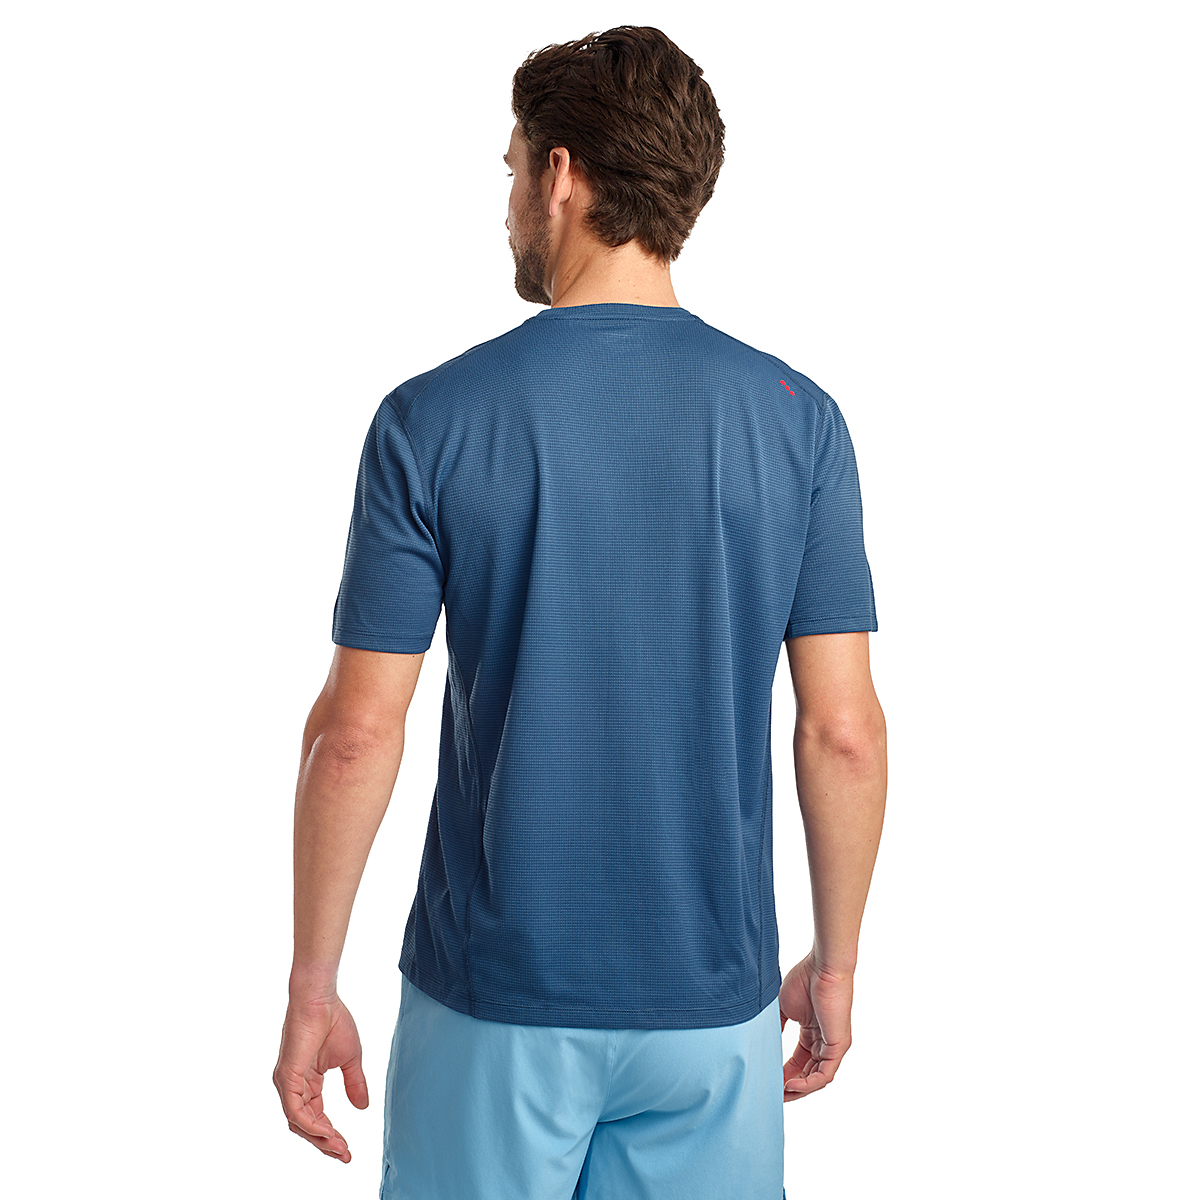 Men's Saucony Stopwatch Short Sleeve - Color: Ensign Blue - Size: S, Ensign Blue, large, image 2